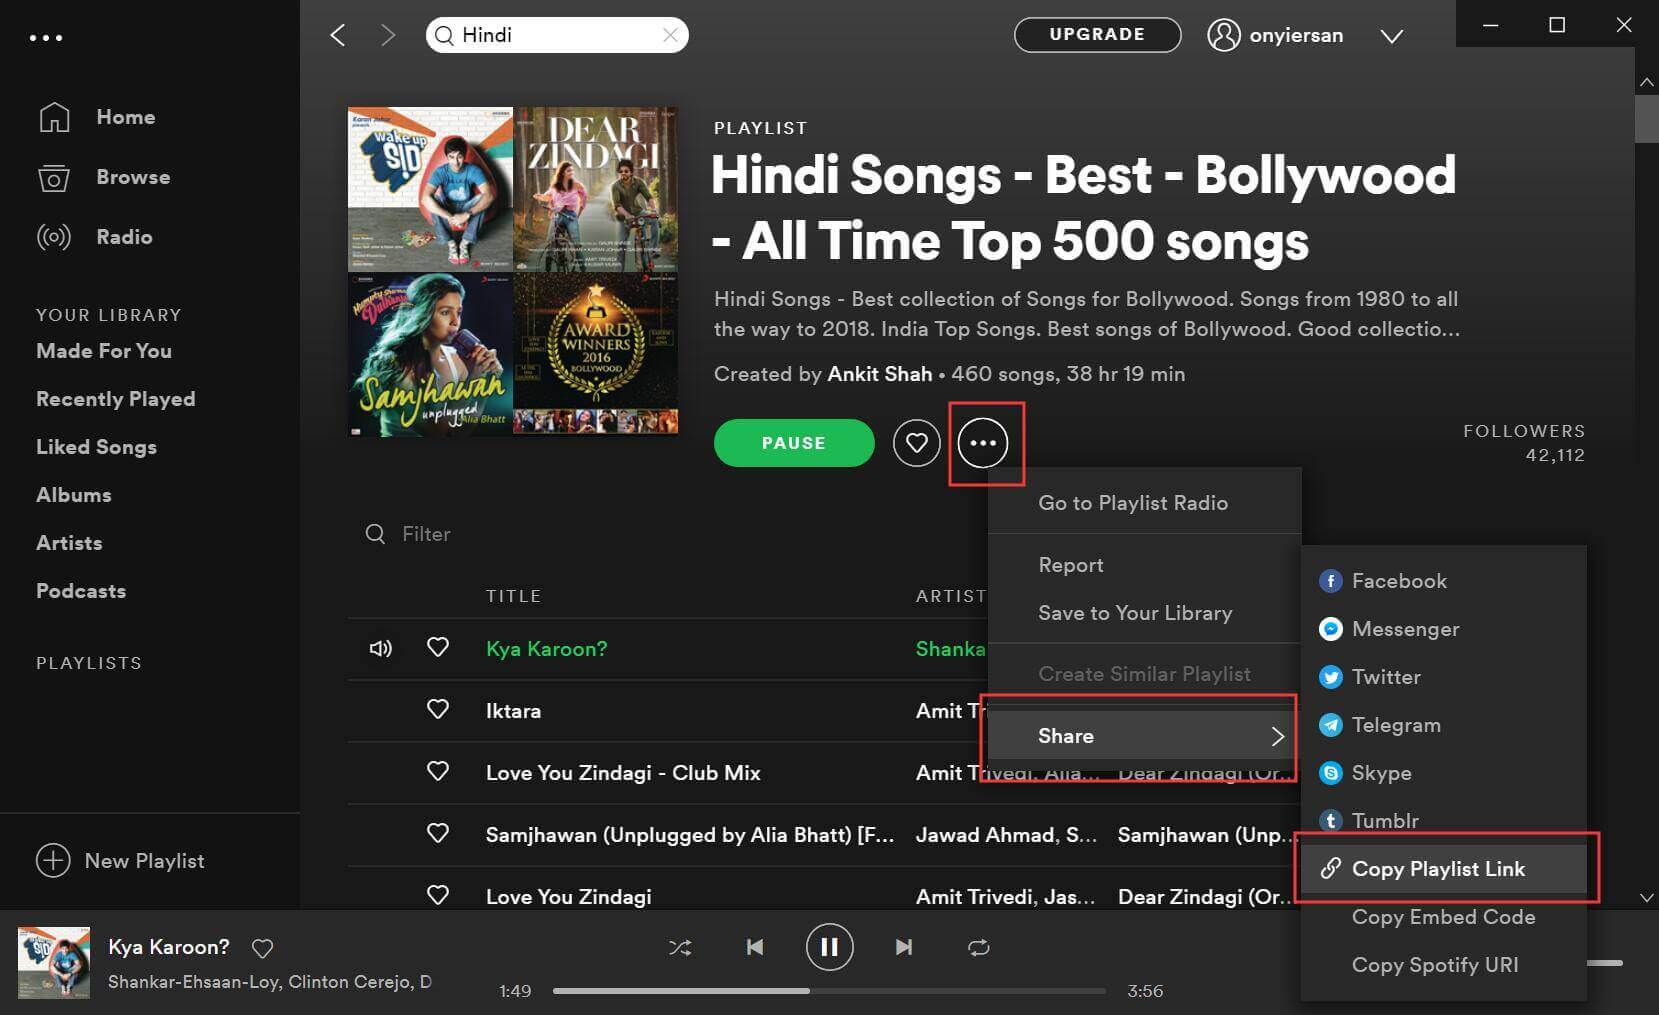 Hindi Songs Mp3 Download From Apple Music Spotify 2020 Updated Listen to your favourite bollywood music and curate your own playlists. hindi songs mp3 download from apple